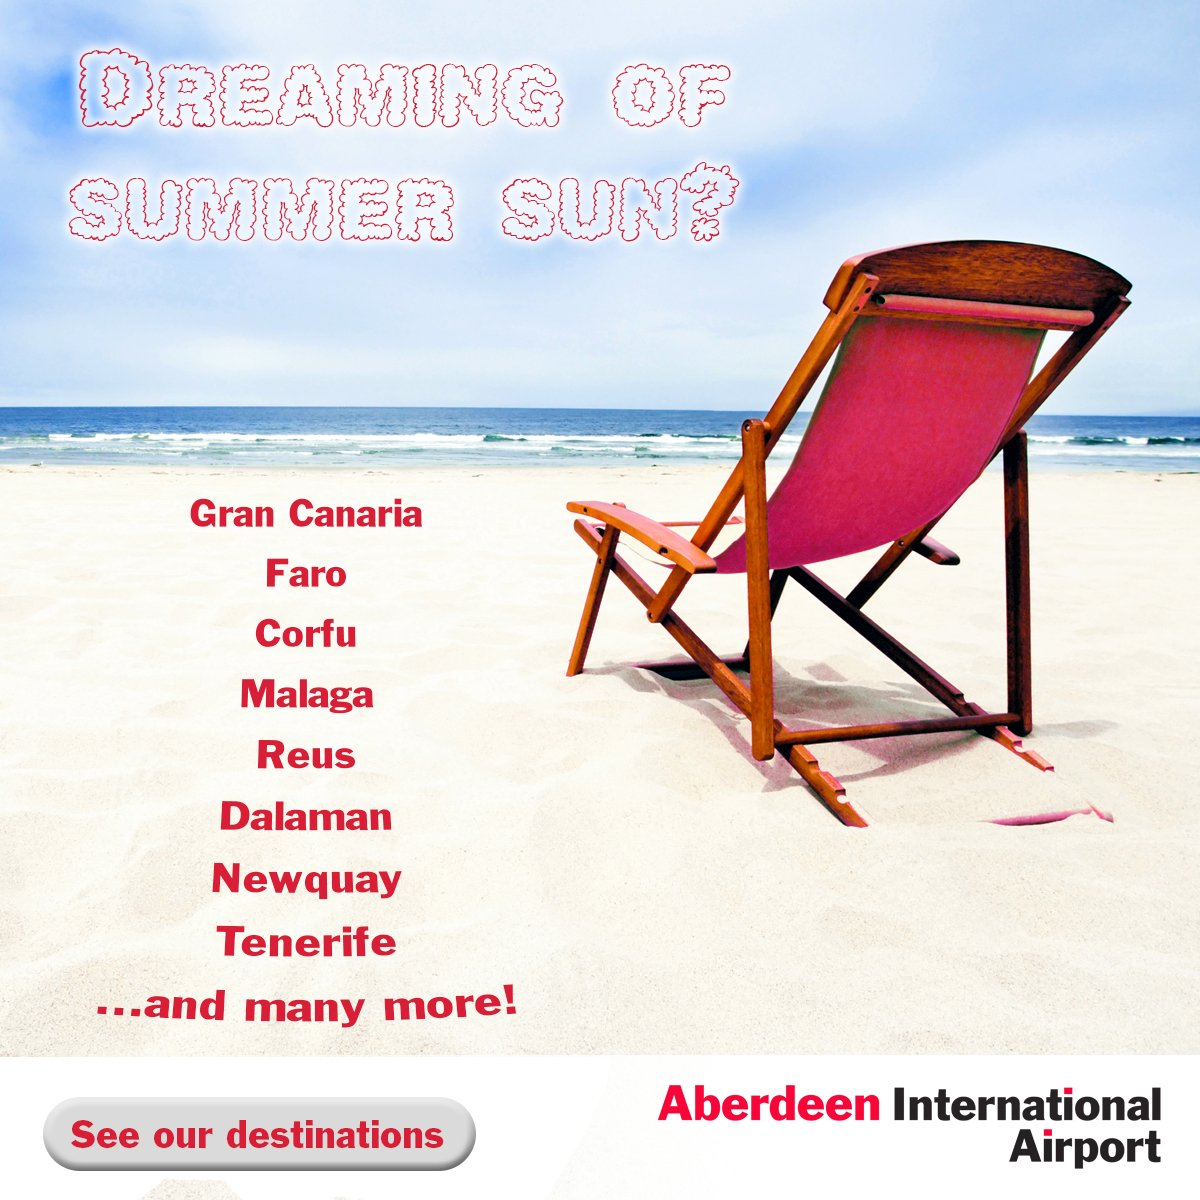 Summer dreaming? We've a destination for everyone including Gran Canaria, Faro, Corfu & more